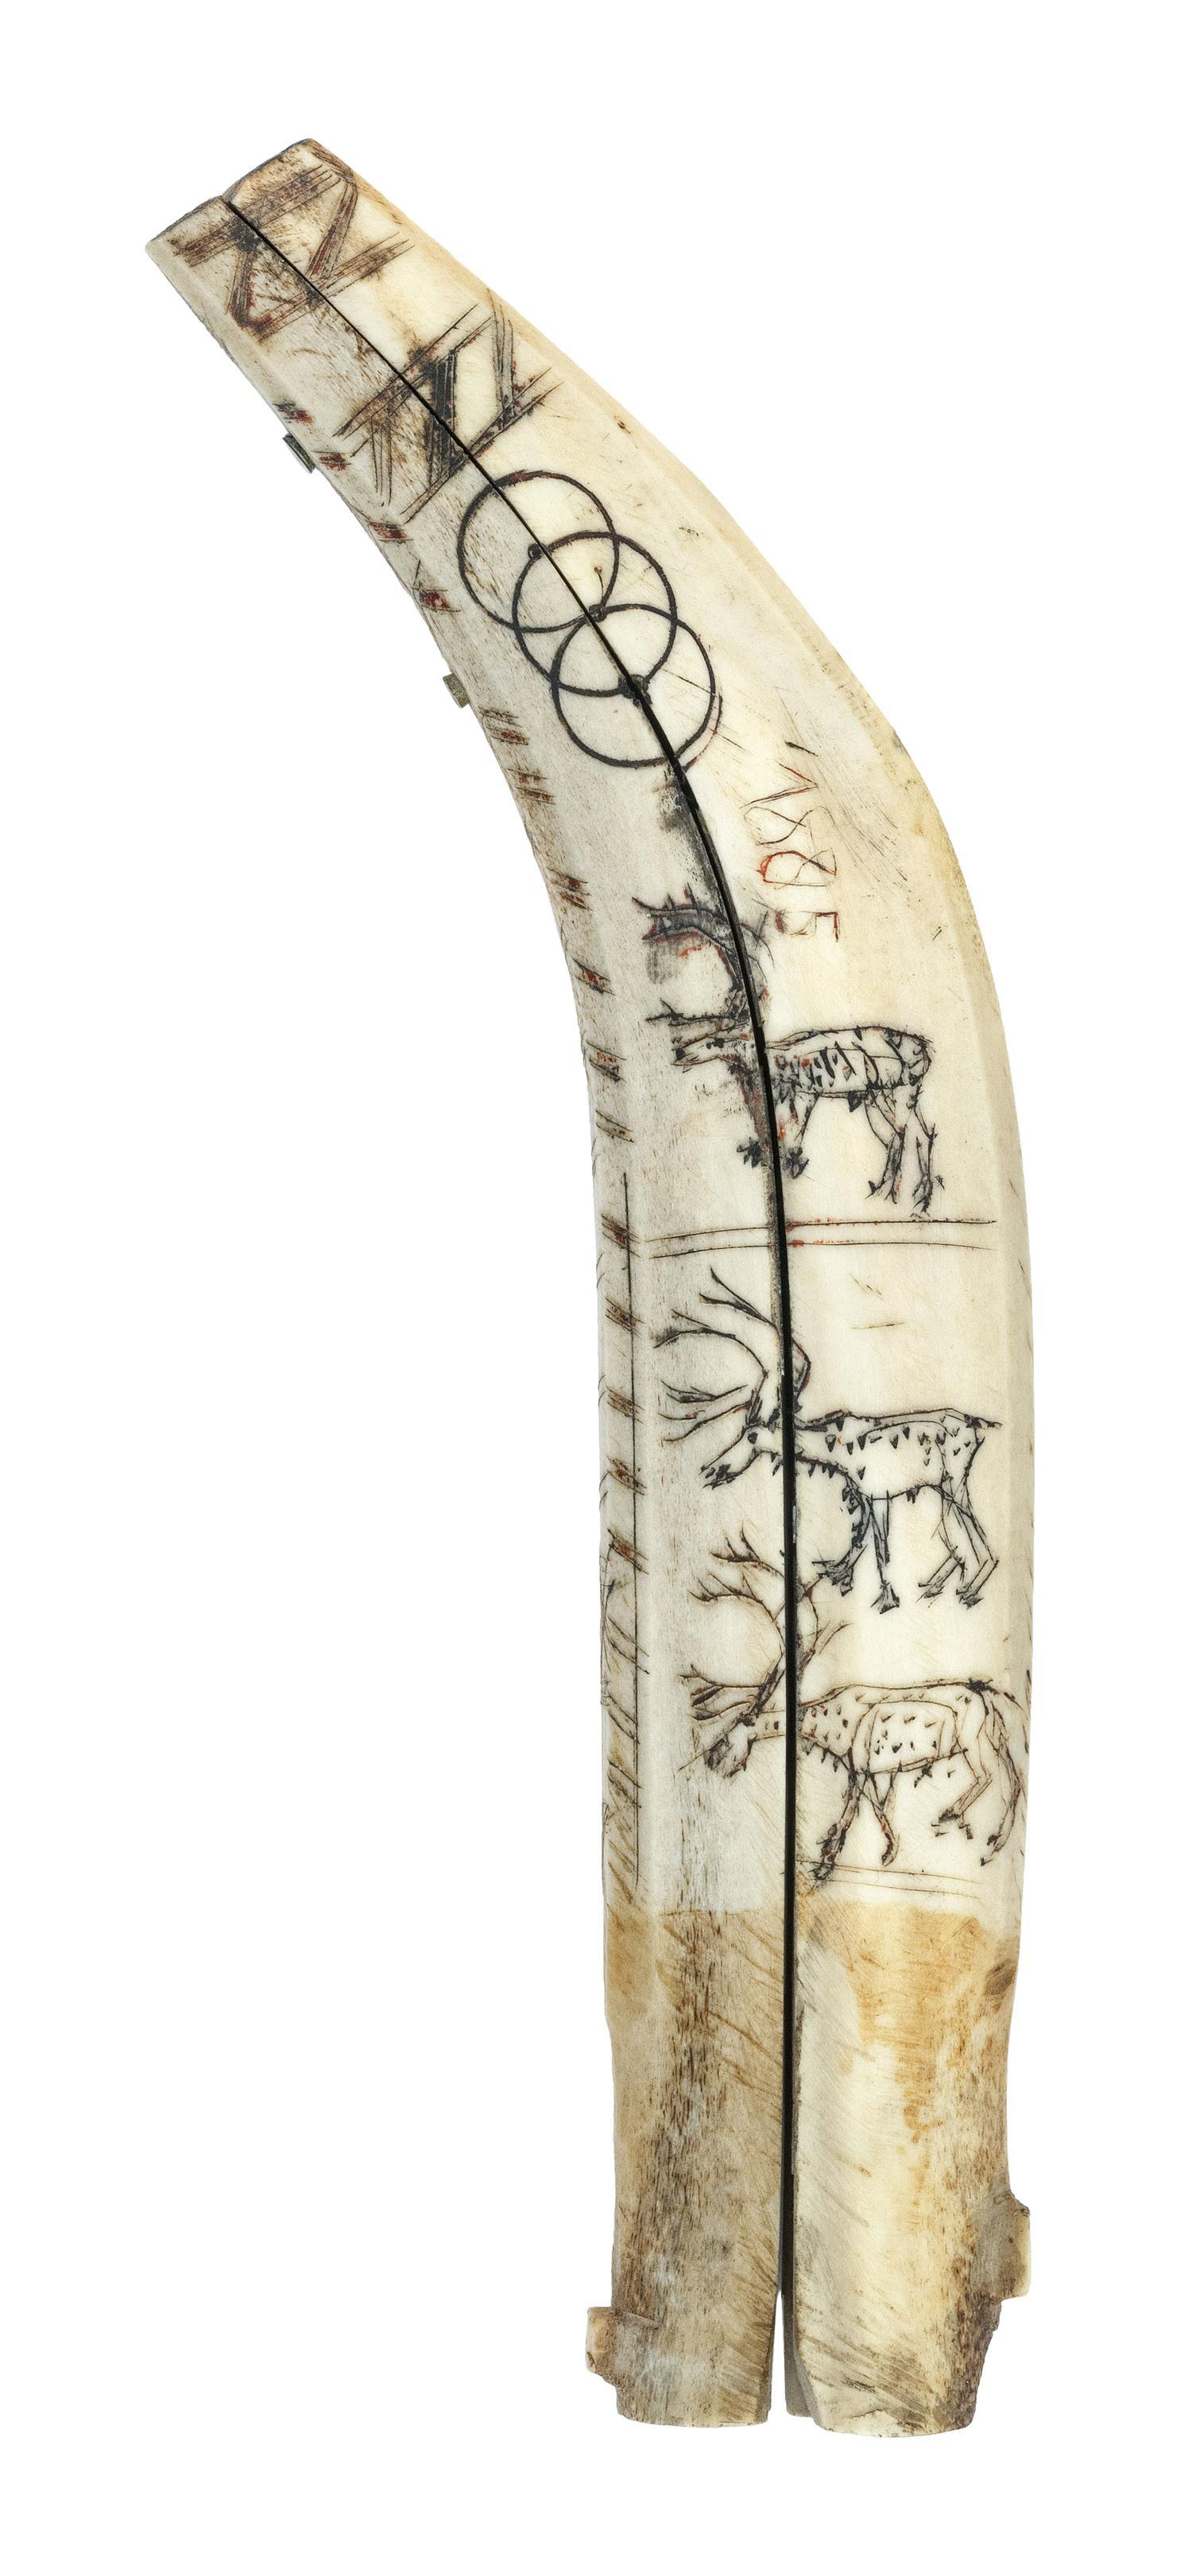 "ESKIMO ENGRAVED BONE KNIFE SHEATH Depicts four stag and multiple geometric designs. Dated 1885. Length 8.75"". Not available for inte..."